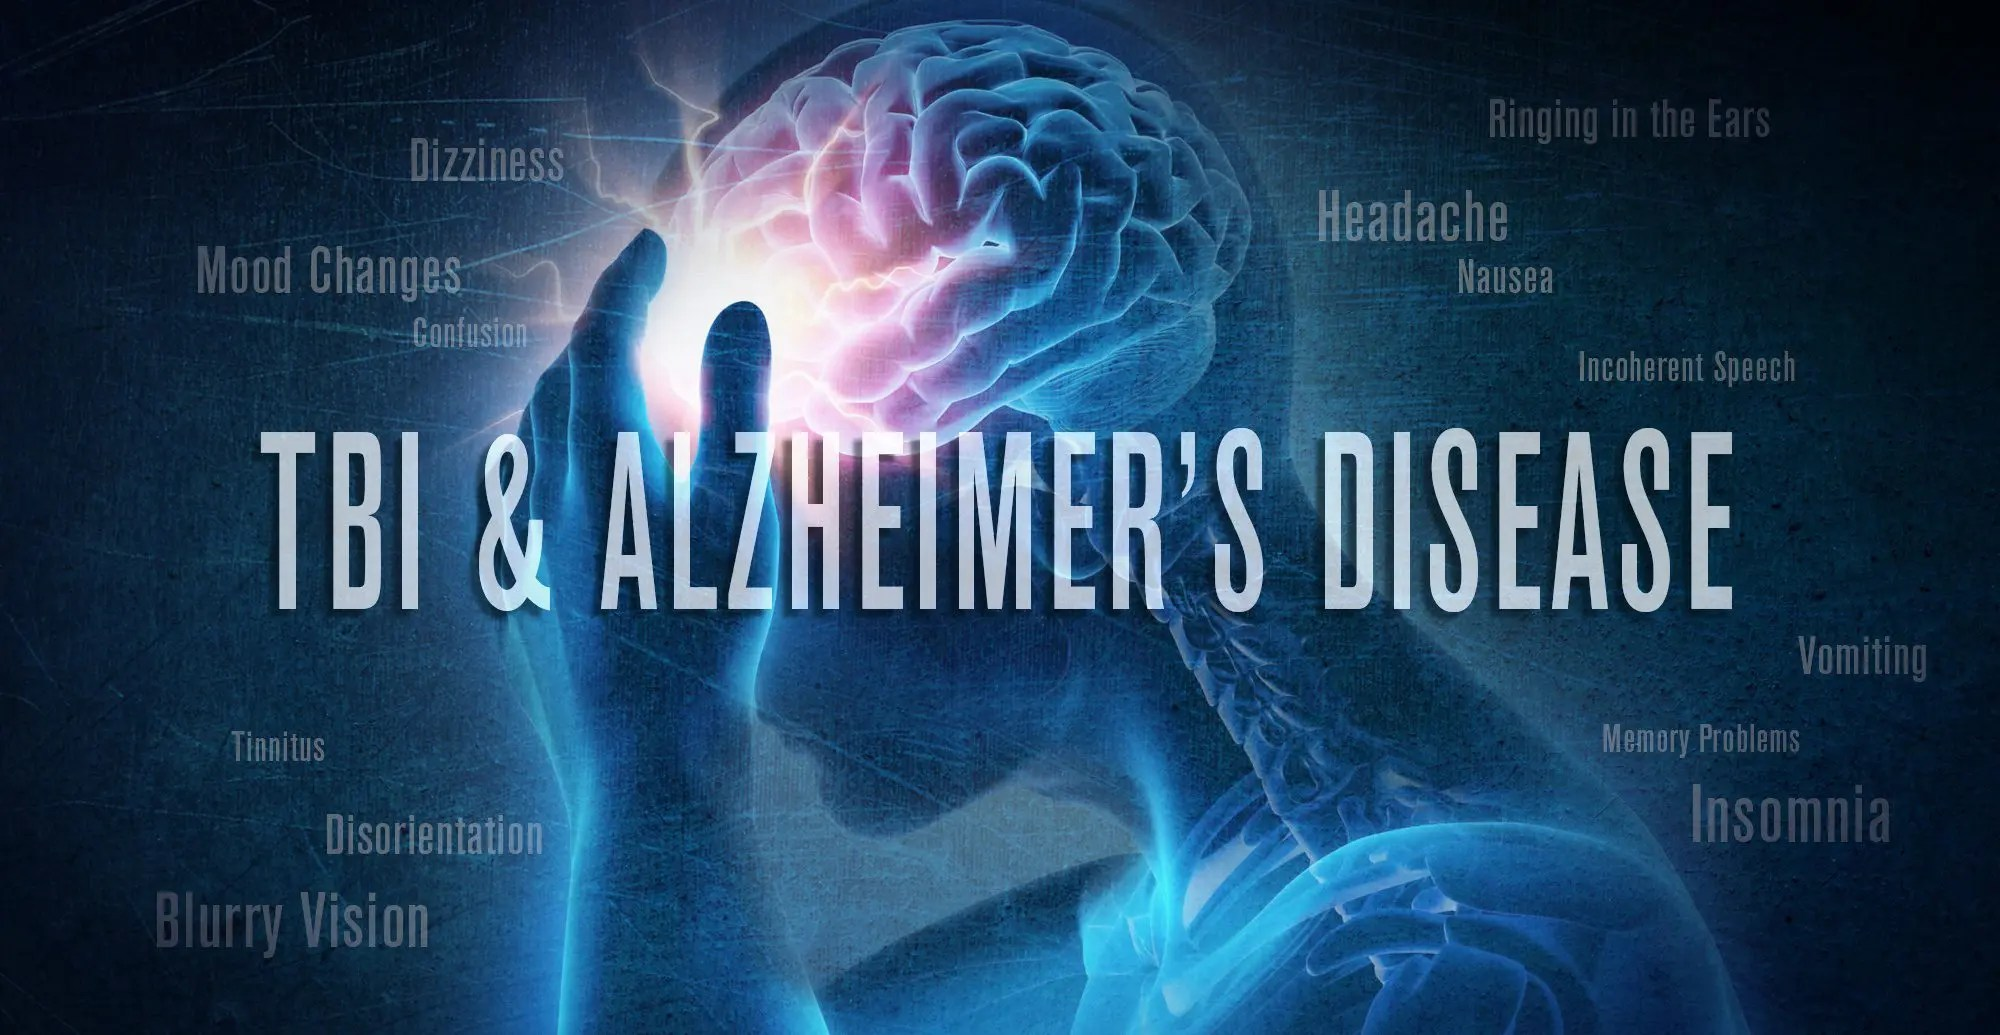 Integrative Neurology: Traumatic Brain Injury and Alzheimer's Disease